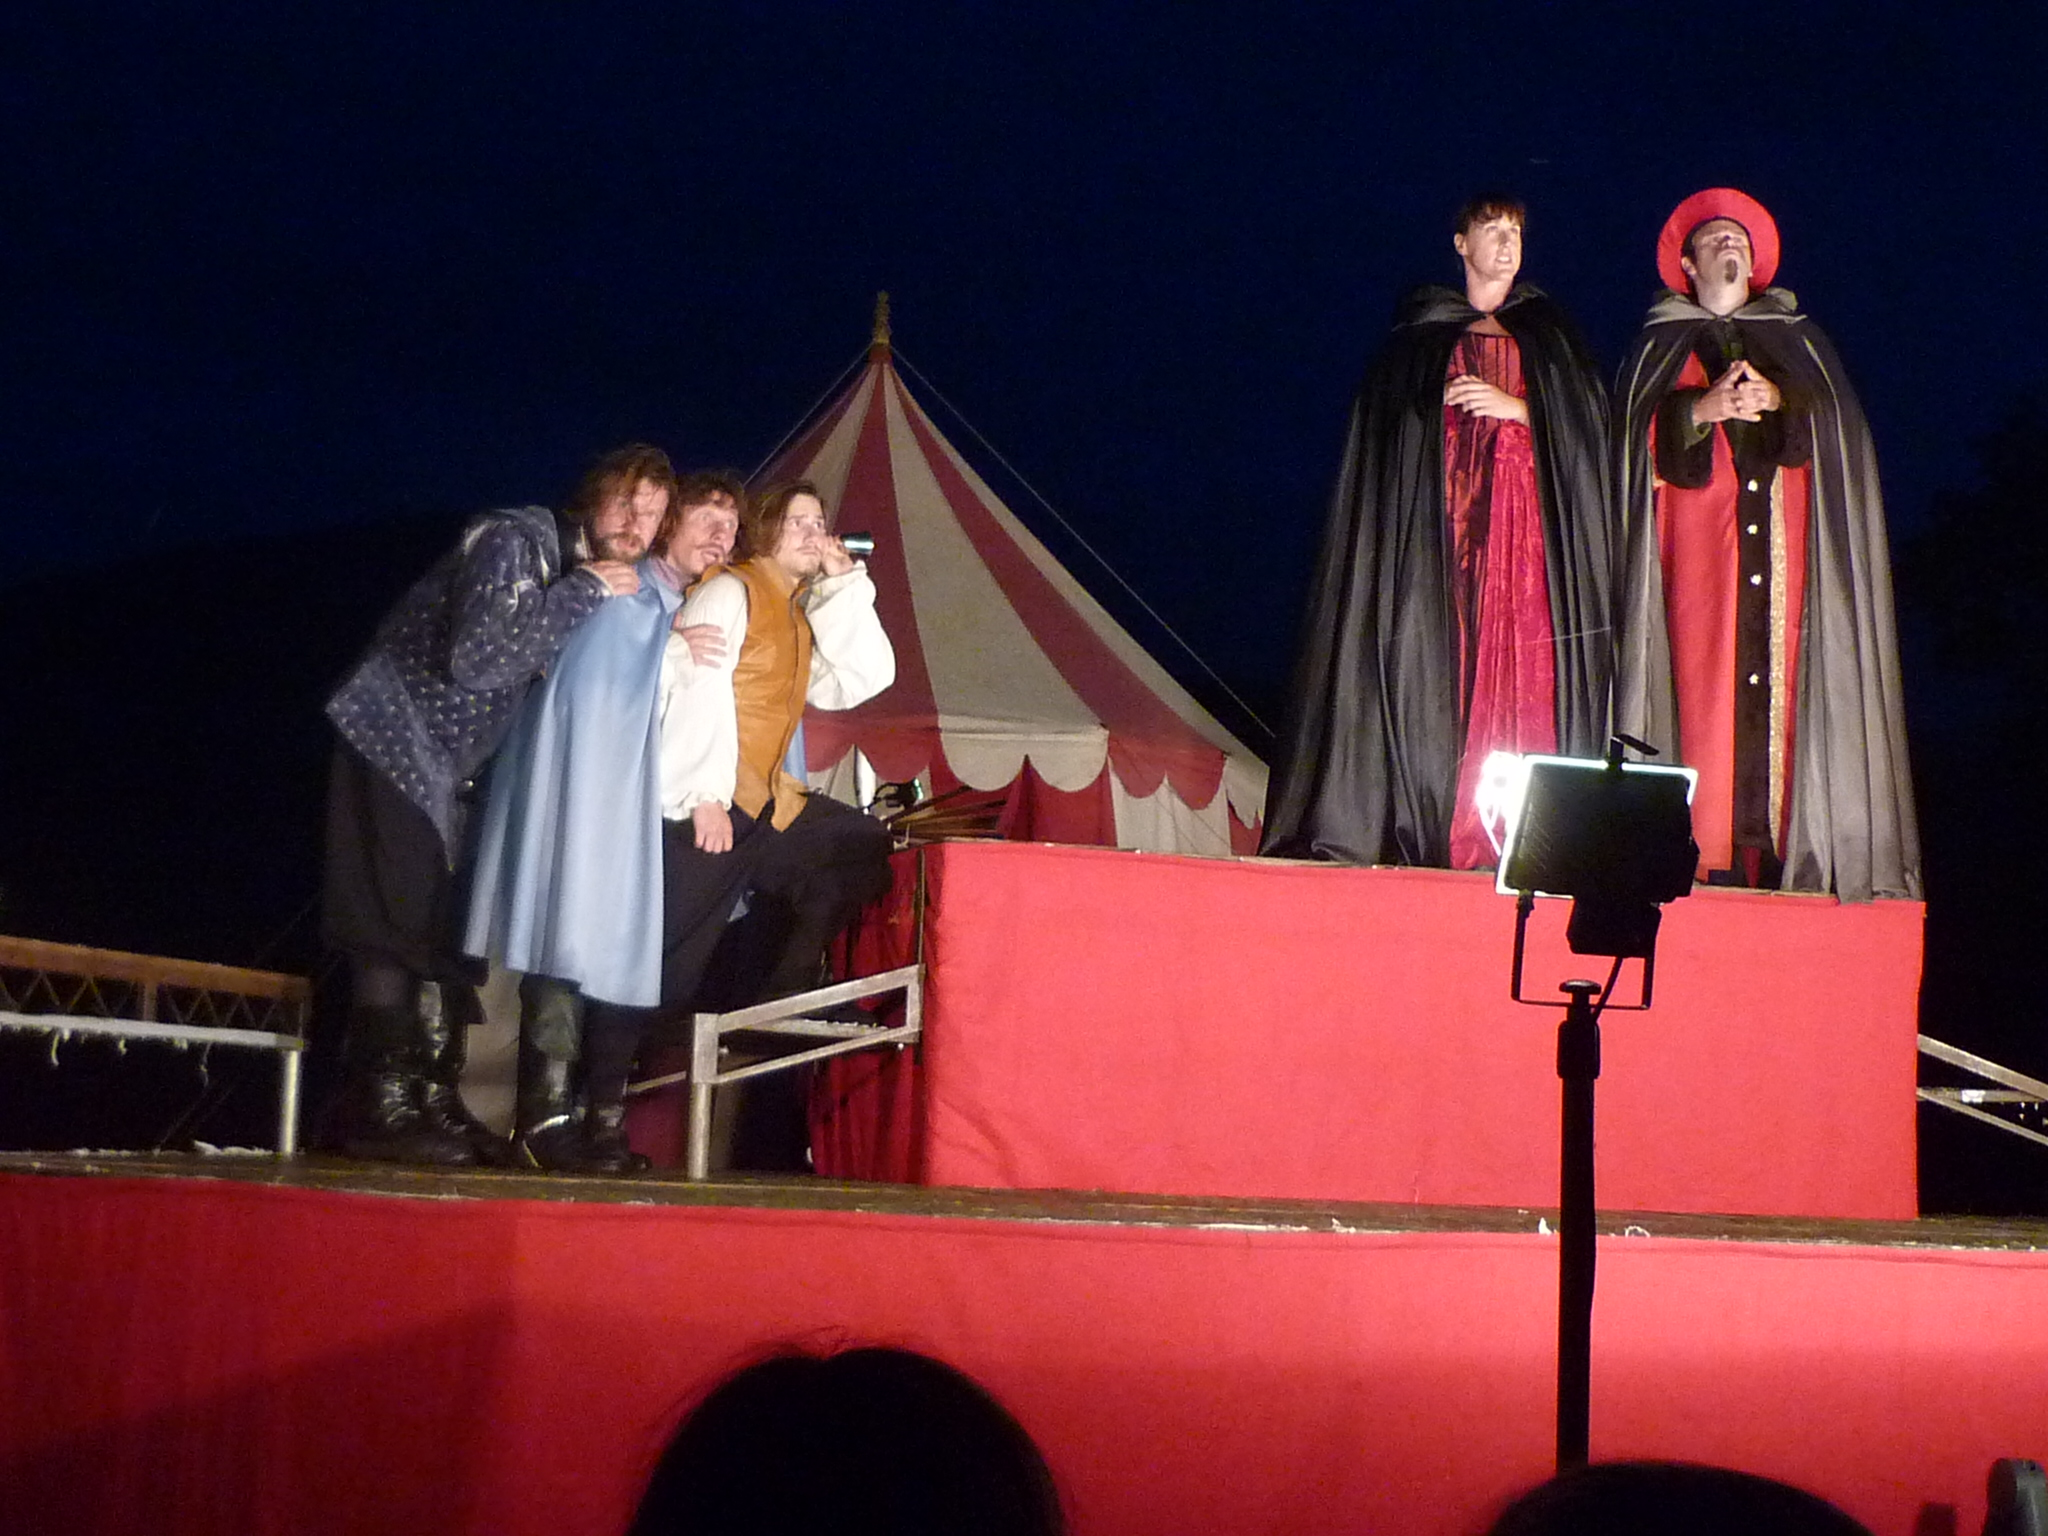 Illyria and the Three Musketeers – Huzzah!